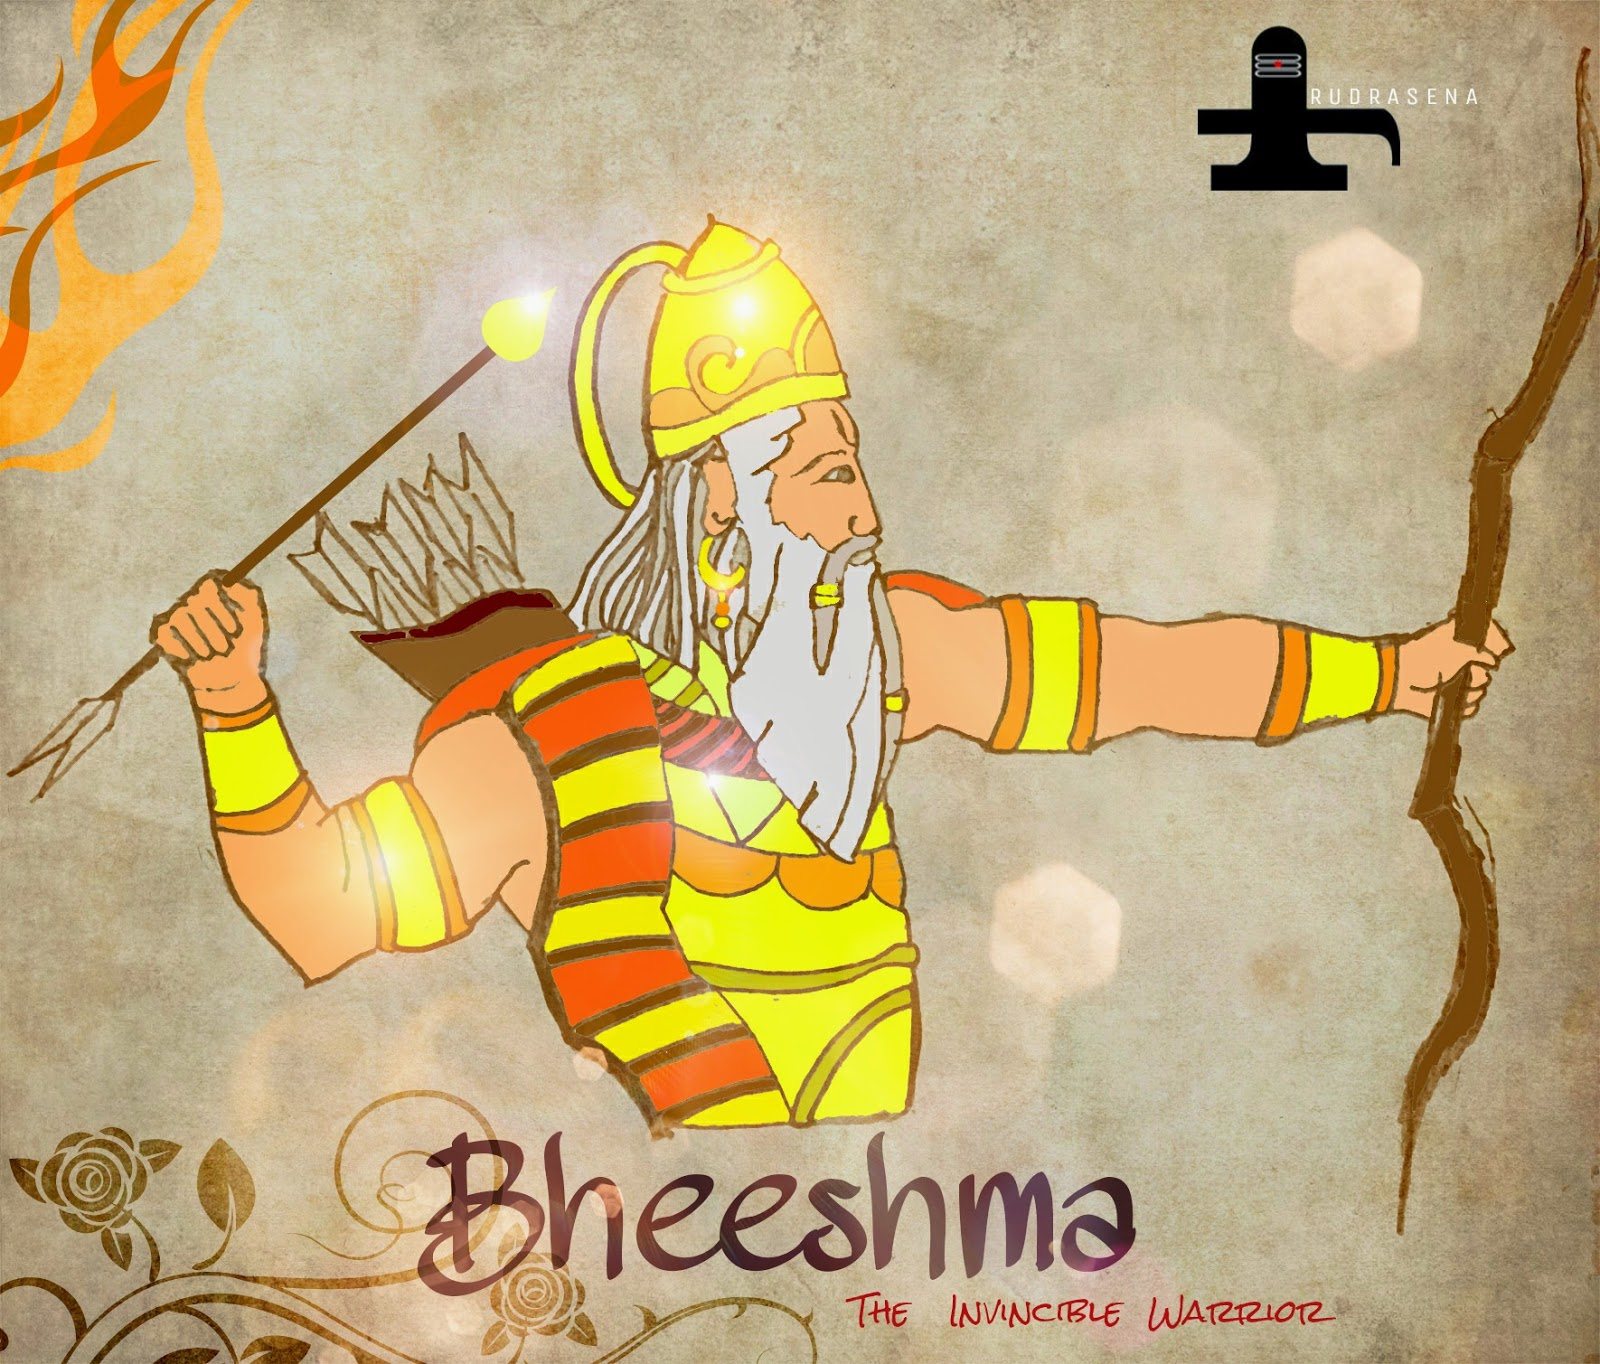 Bheeshma The Invincible Warrior